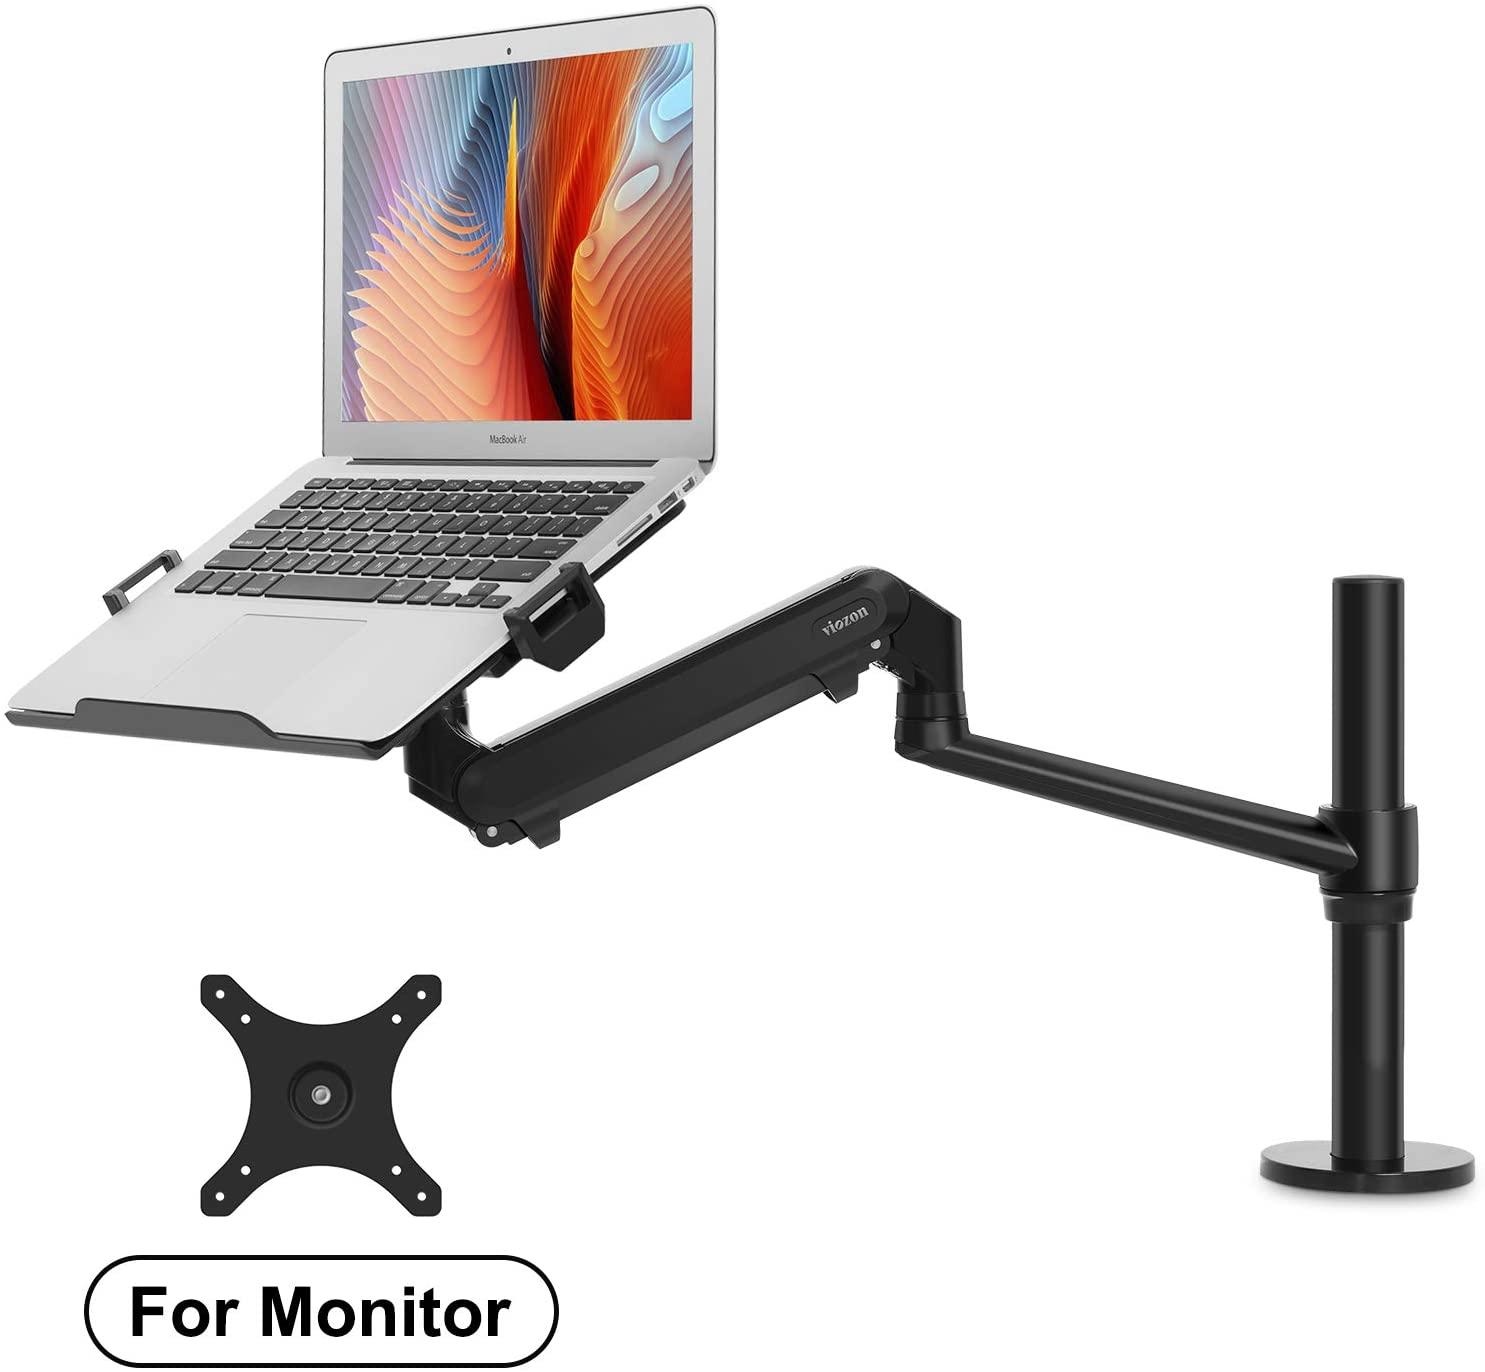 viozon Monitor or Laptop Mount, Single Gas Spring Arm Desk Stand/Holder for 17-32